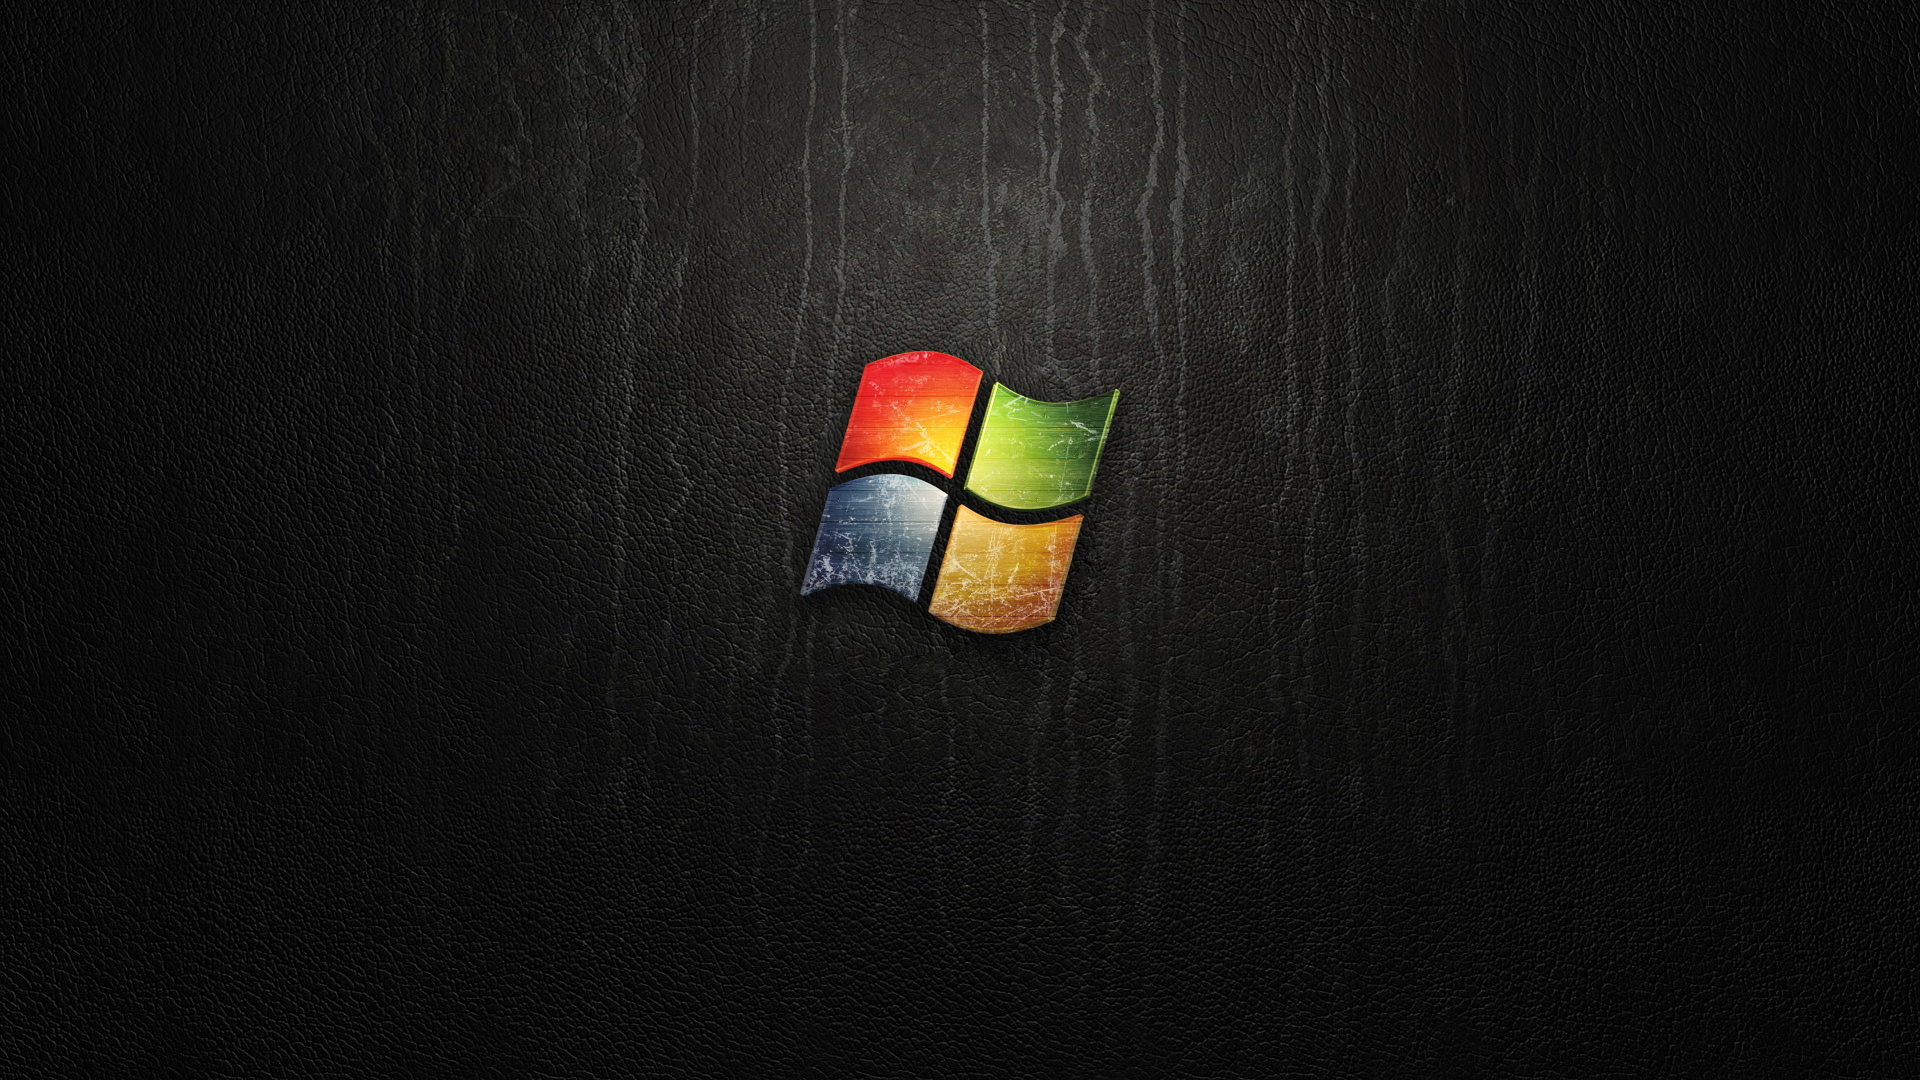 Microsoft Desktop Backgrounds on Leather Abstract Black Windows 7 Microsoft Logos Hd Wallpaper